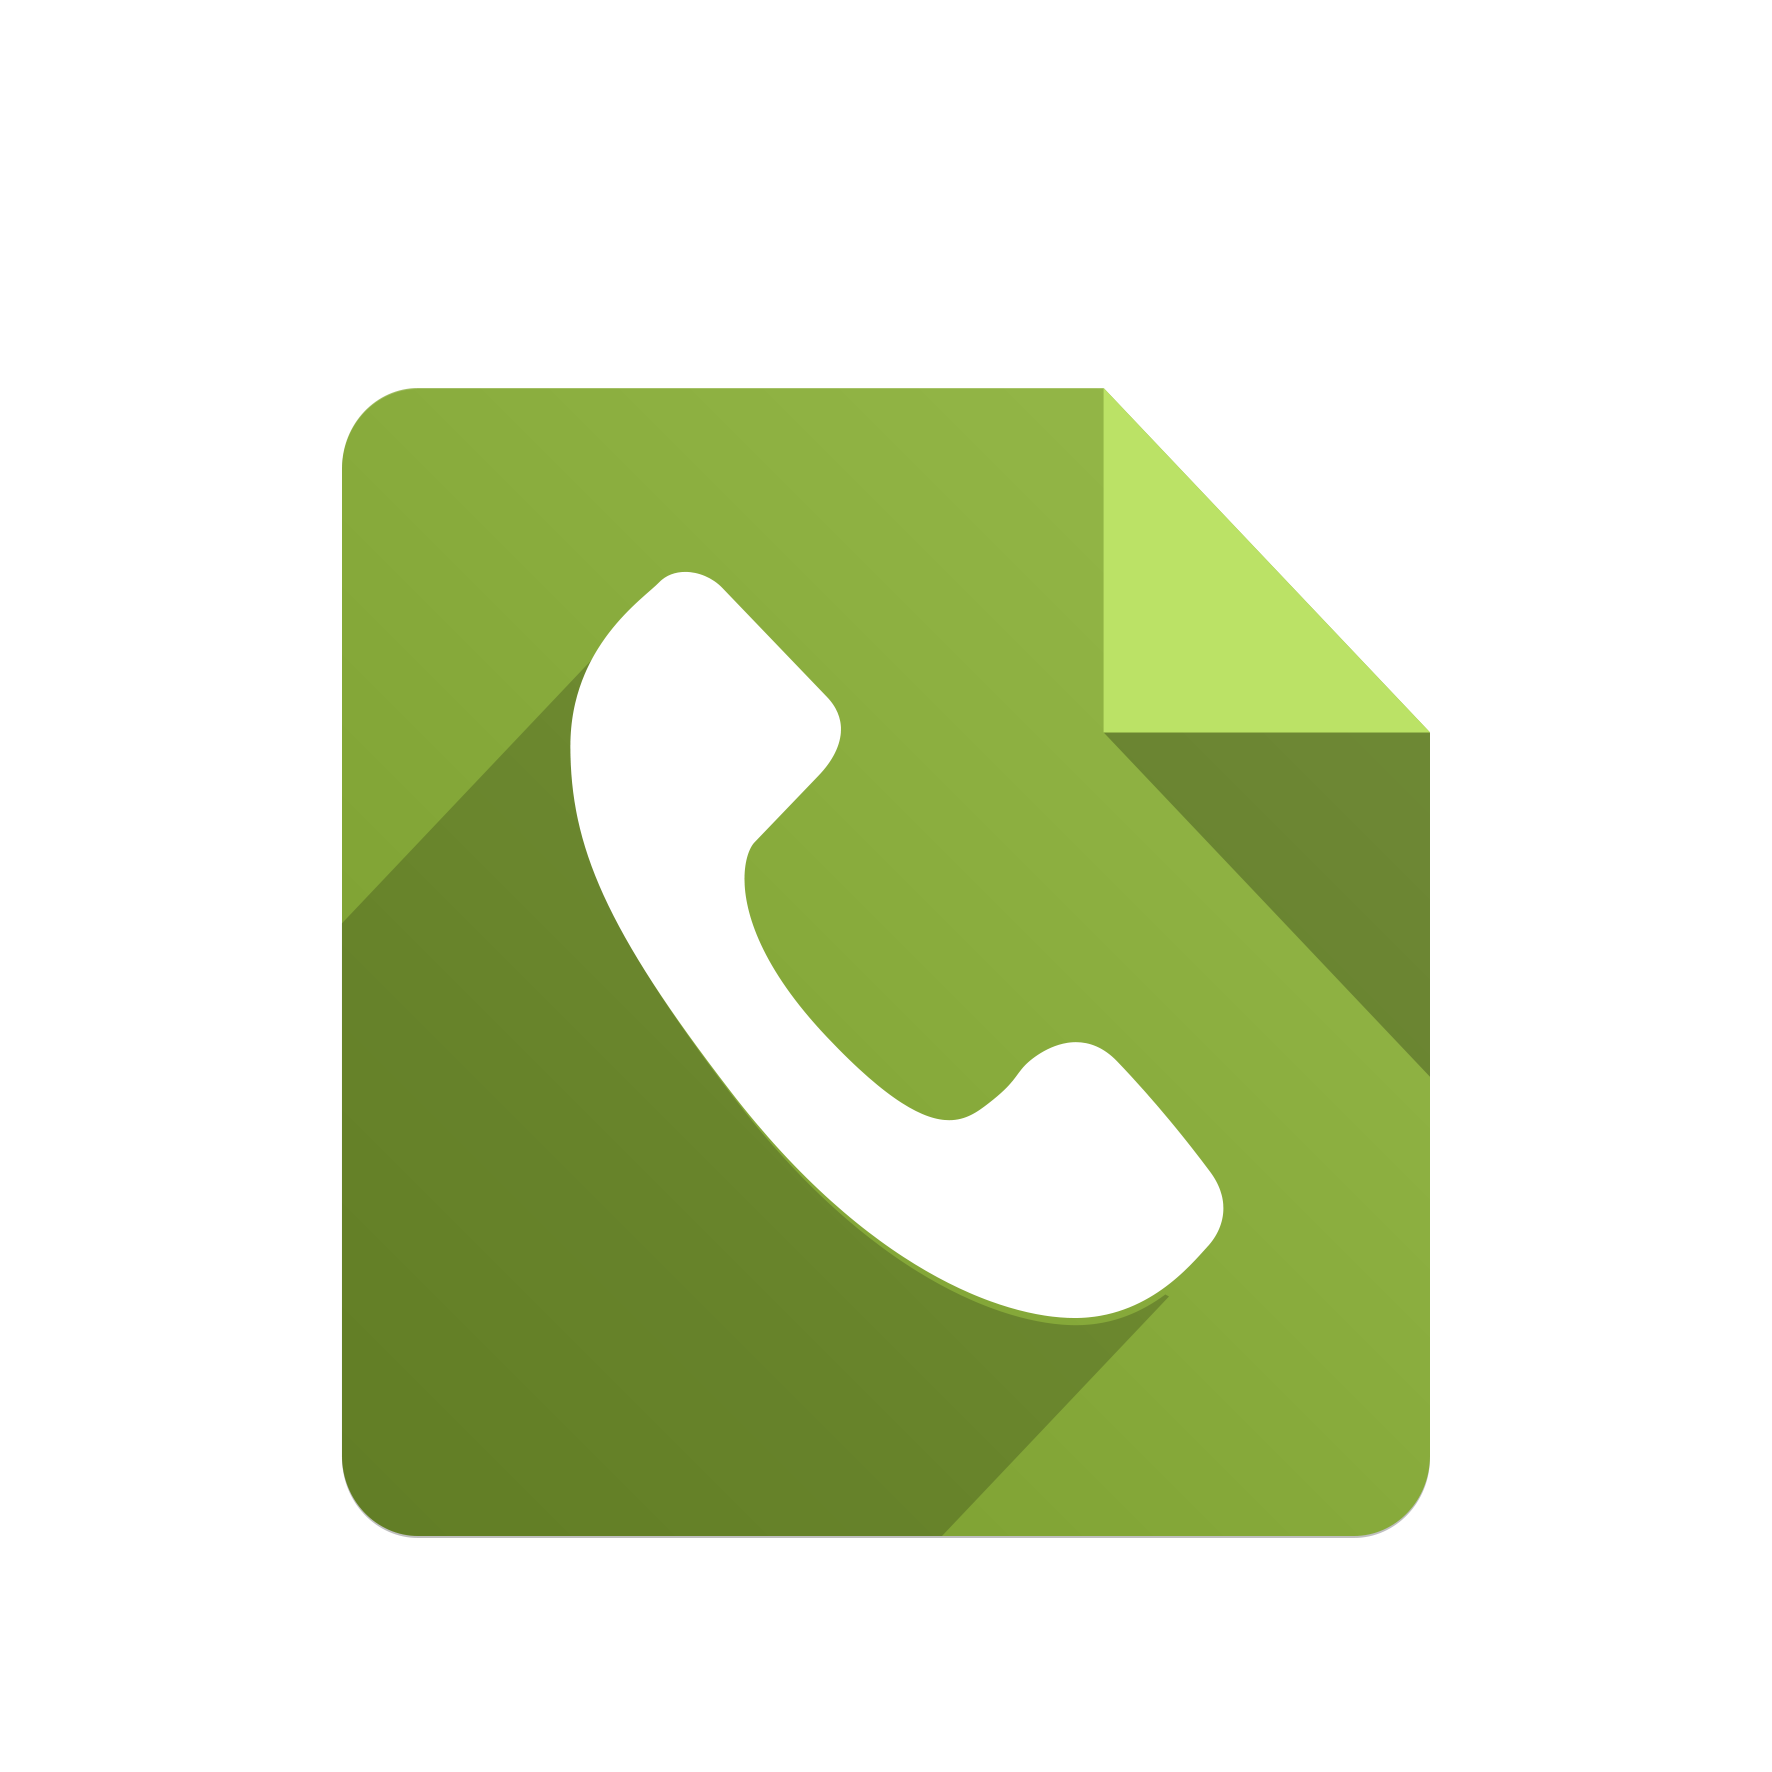 Telephone clipart green phone. Icon cell transprent png